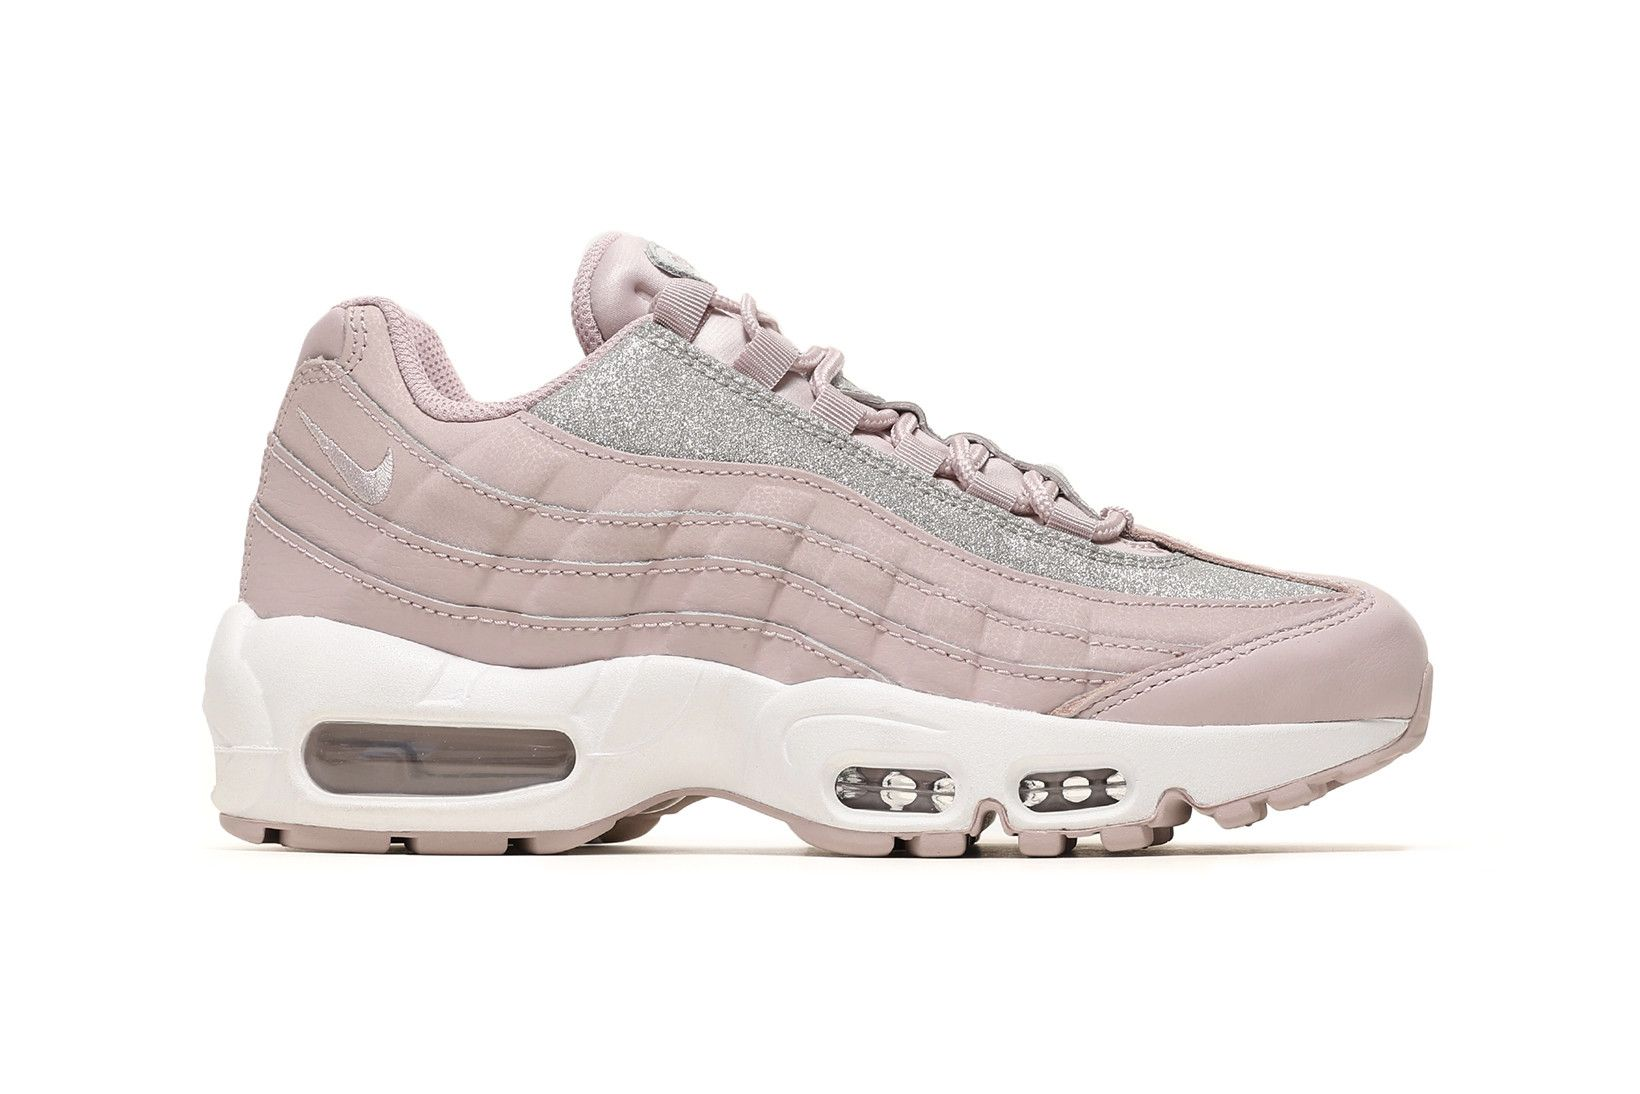 Go Glittery With Nike S New Air Max 95 Particle Rose Pink Nike Shoes Nike Shoes Air Max Nike Air Max 95